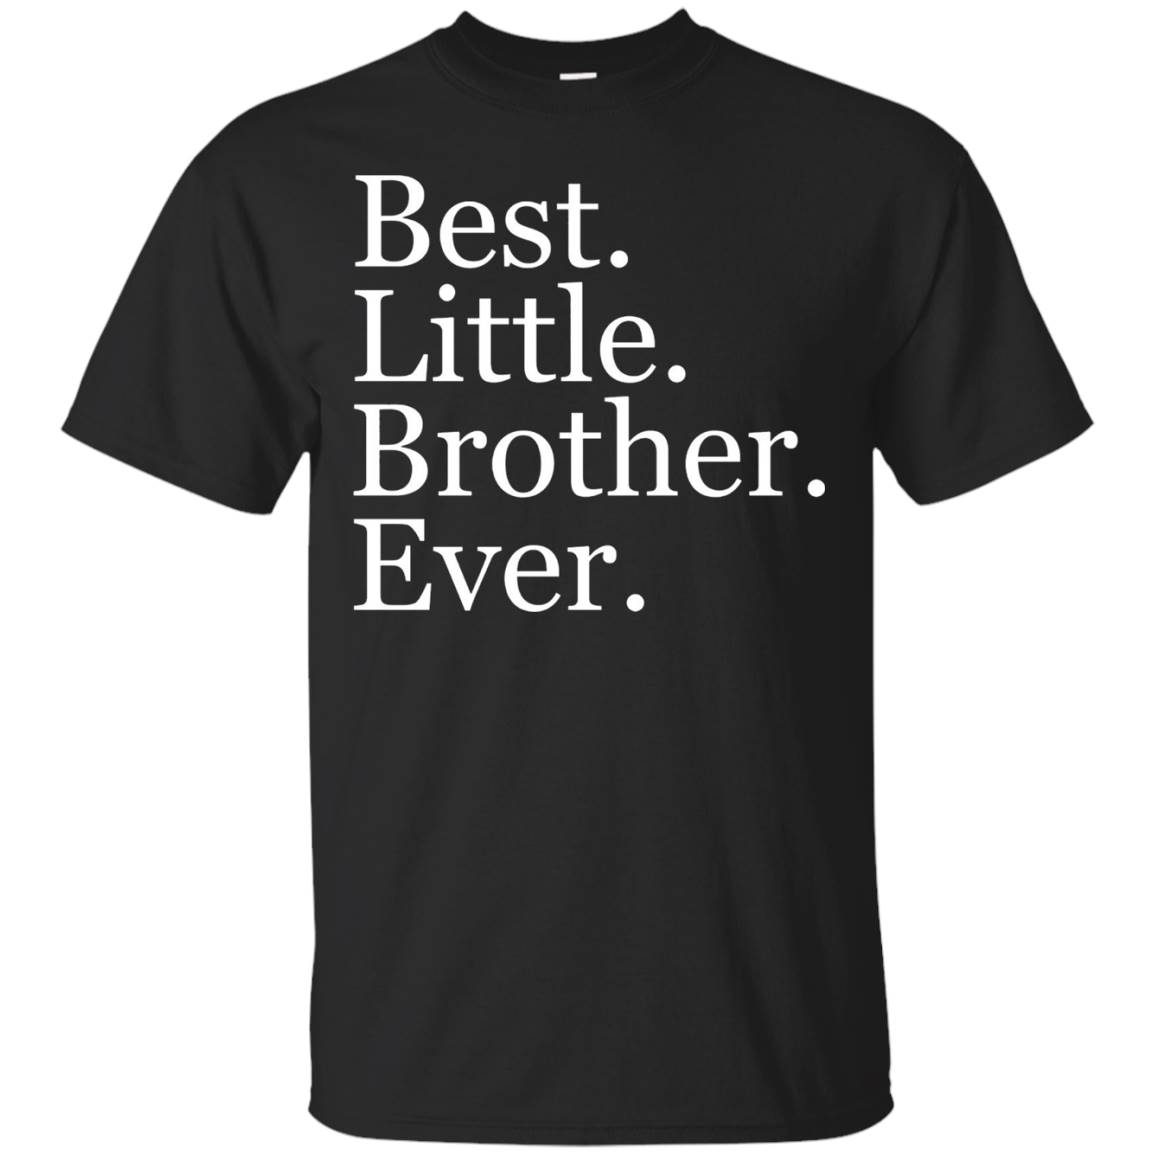 Brother T-Shirts – Best Little Brother Ever Funny Cute Shirt